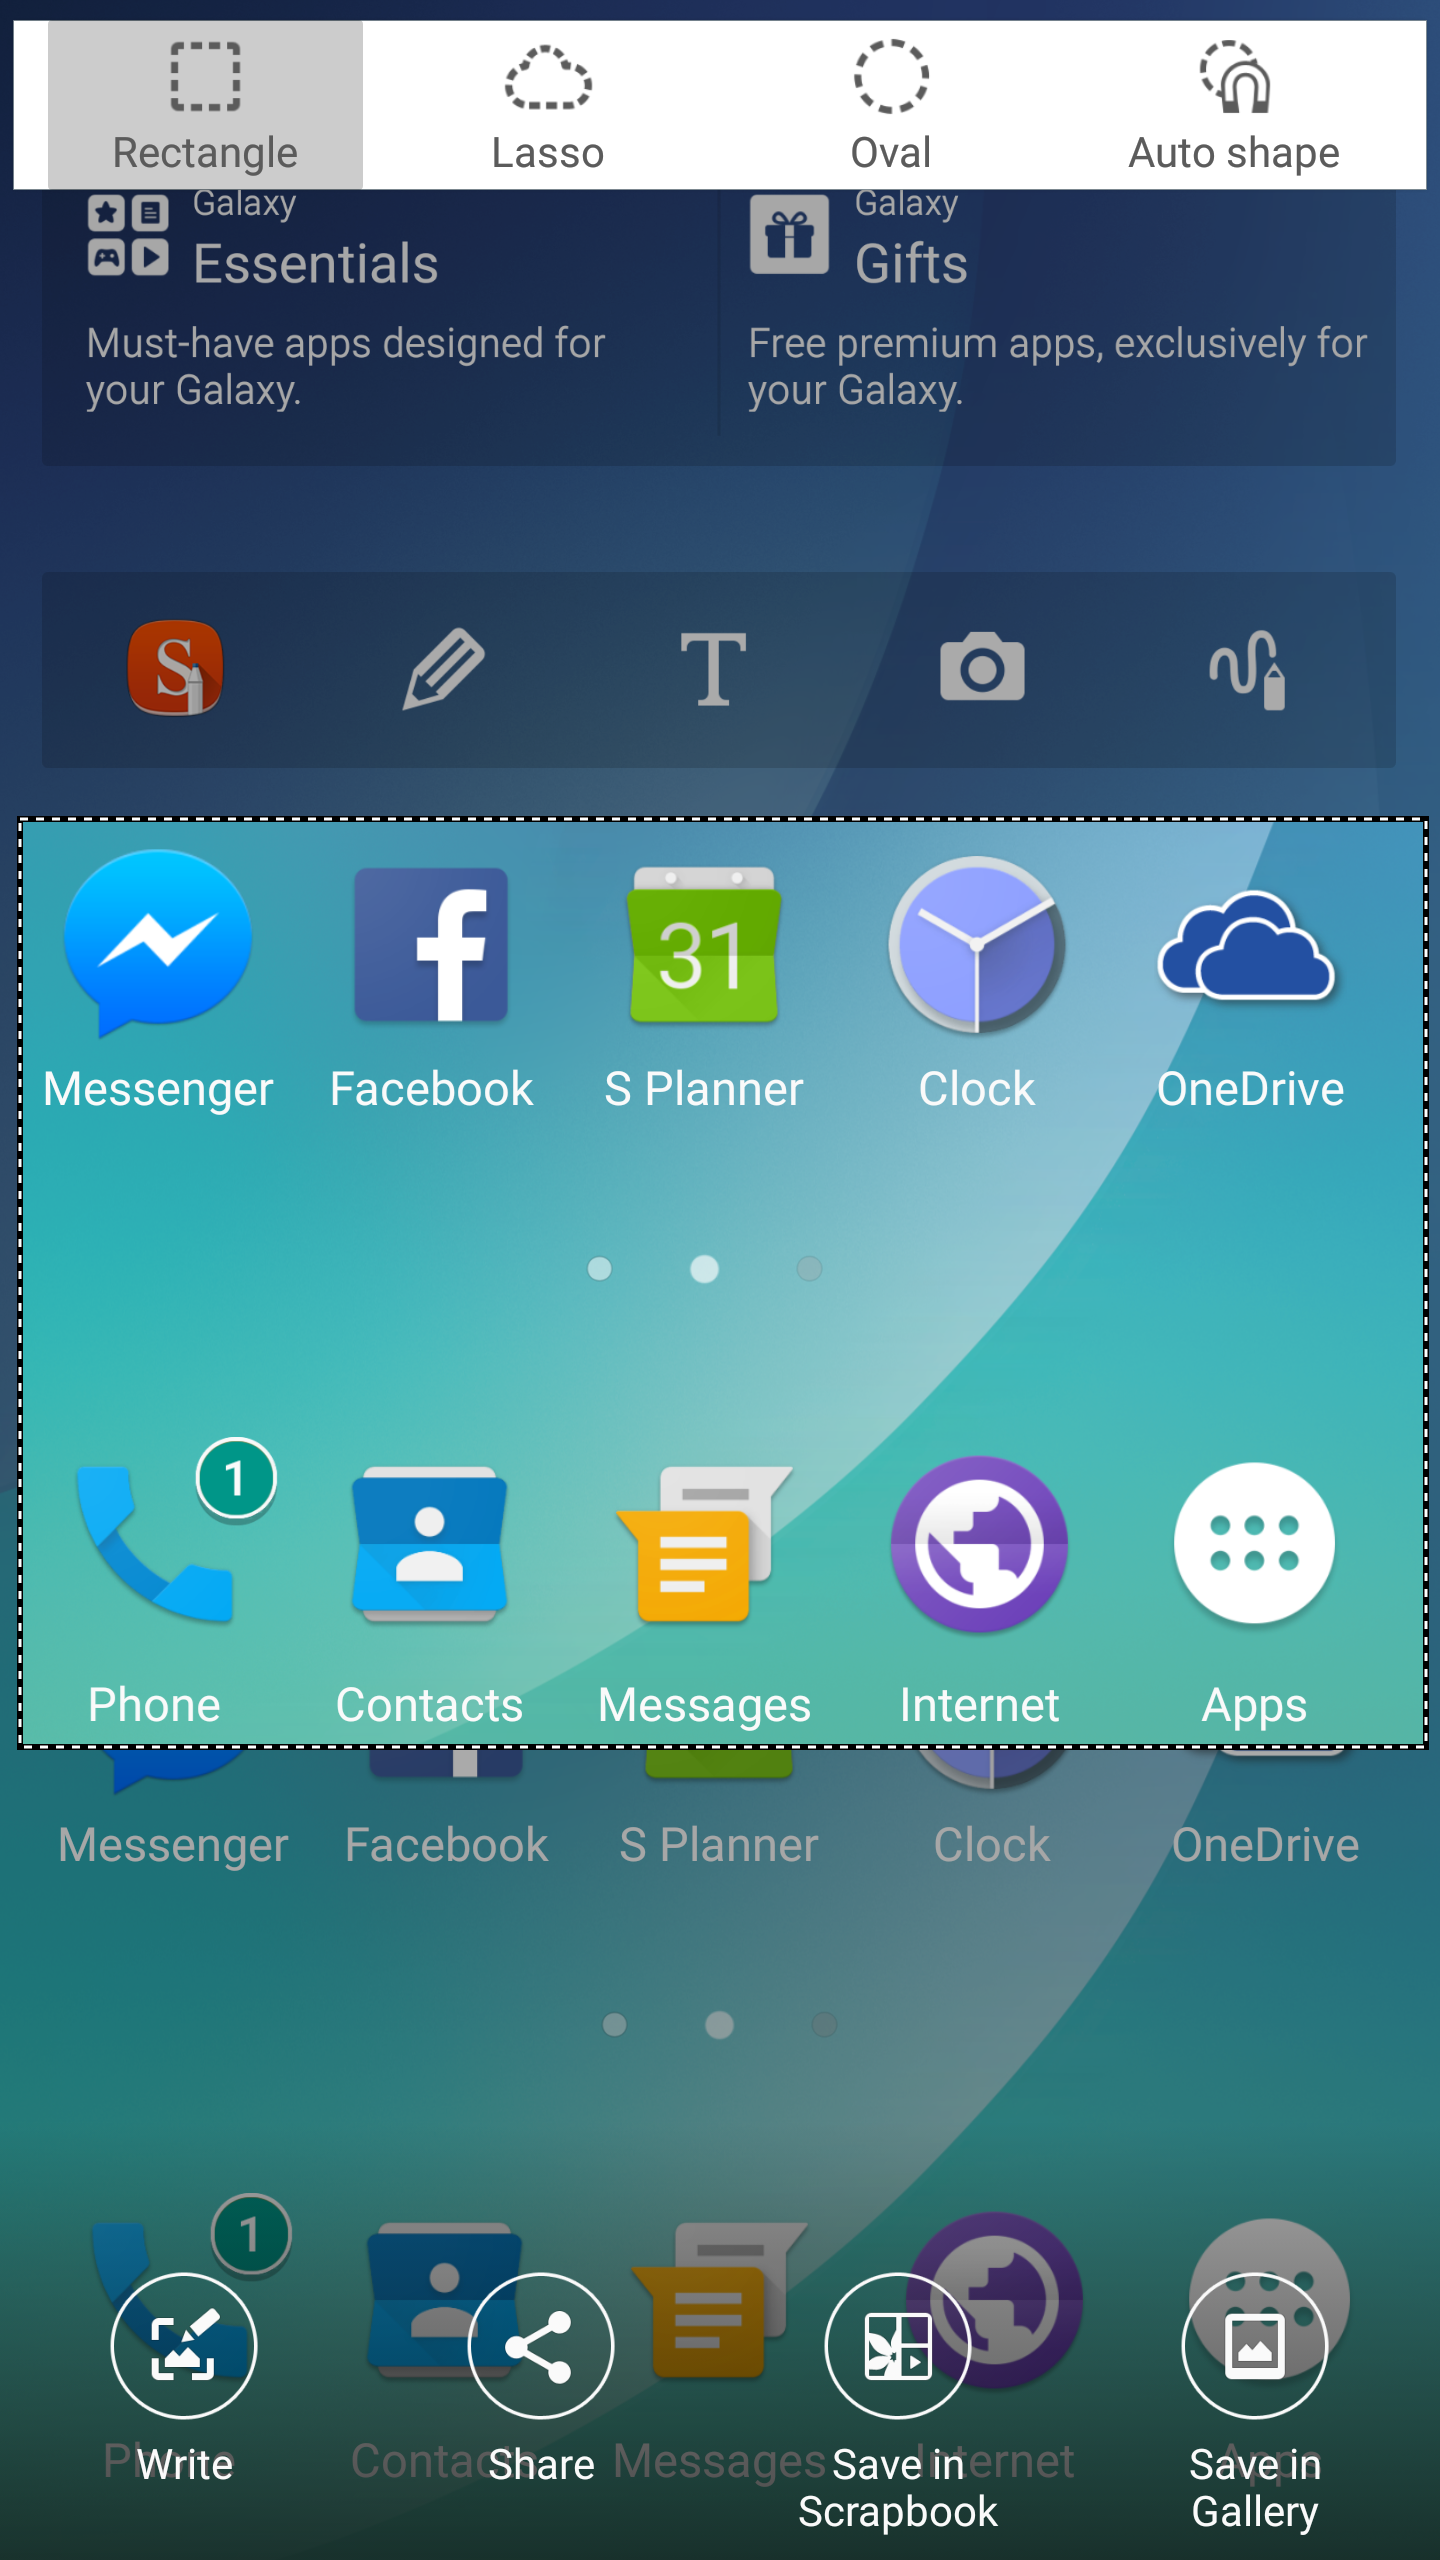 Software: TouchWiz UX and Edge UX - The Samsung Galaxy Note5